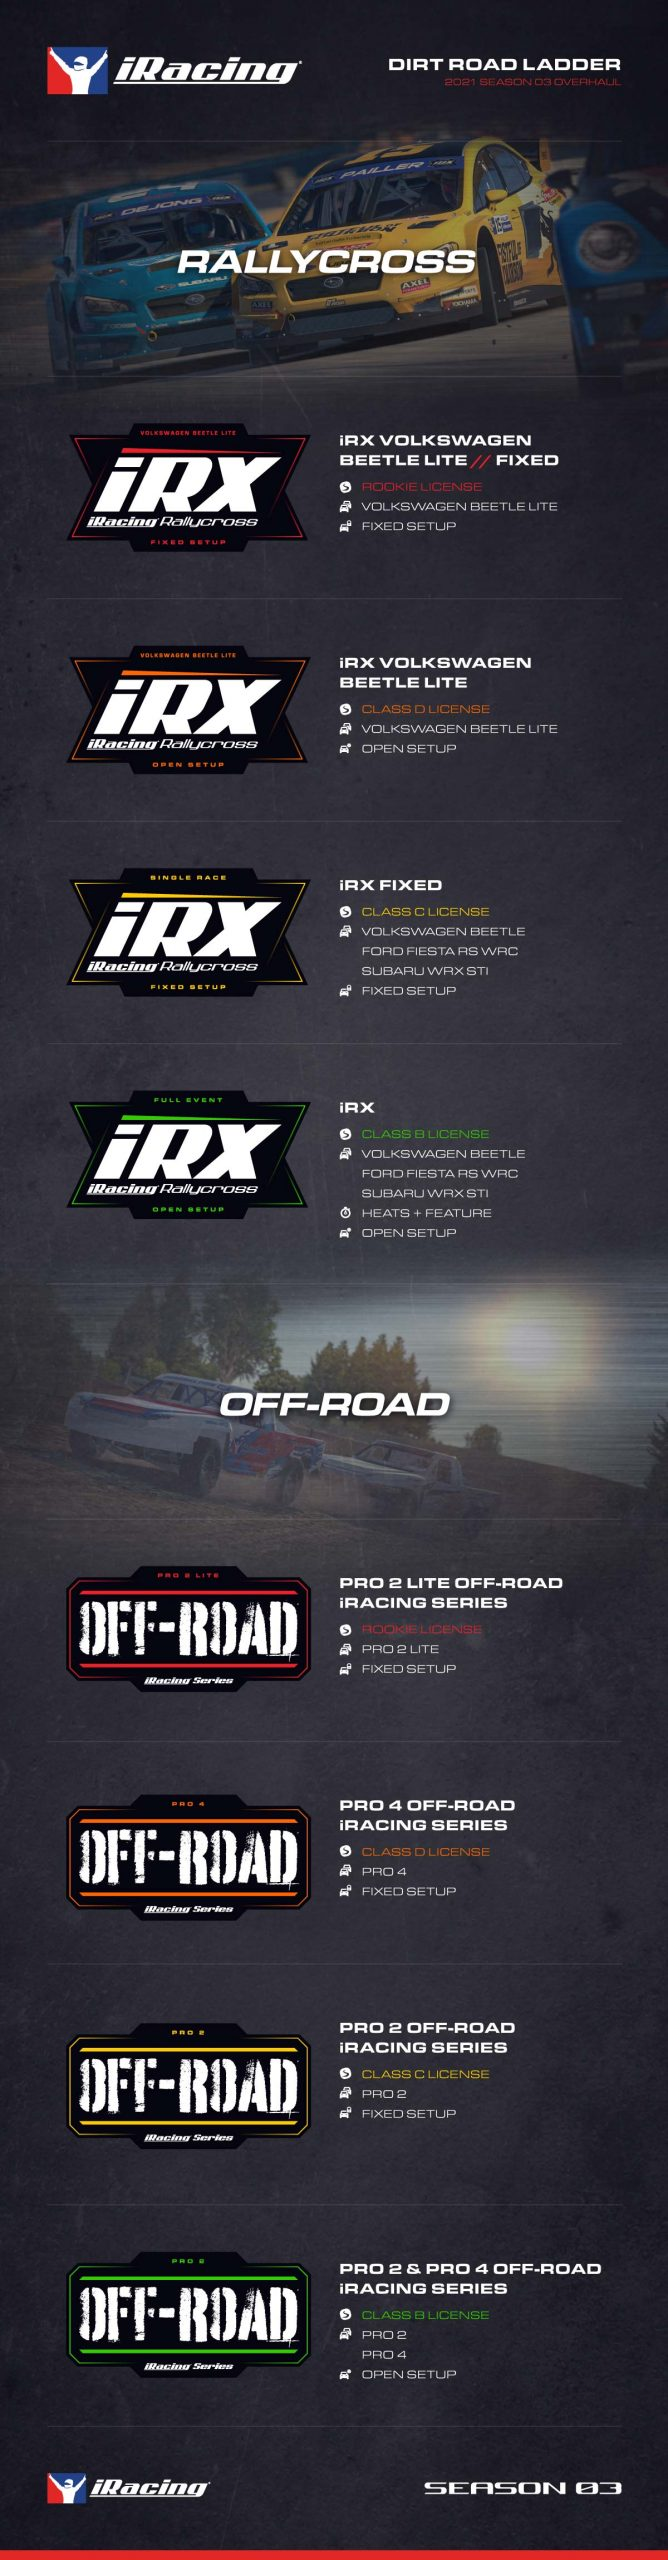 The iRacing Dirt Road Ladder from 2021 Season 3